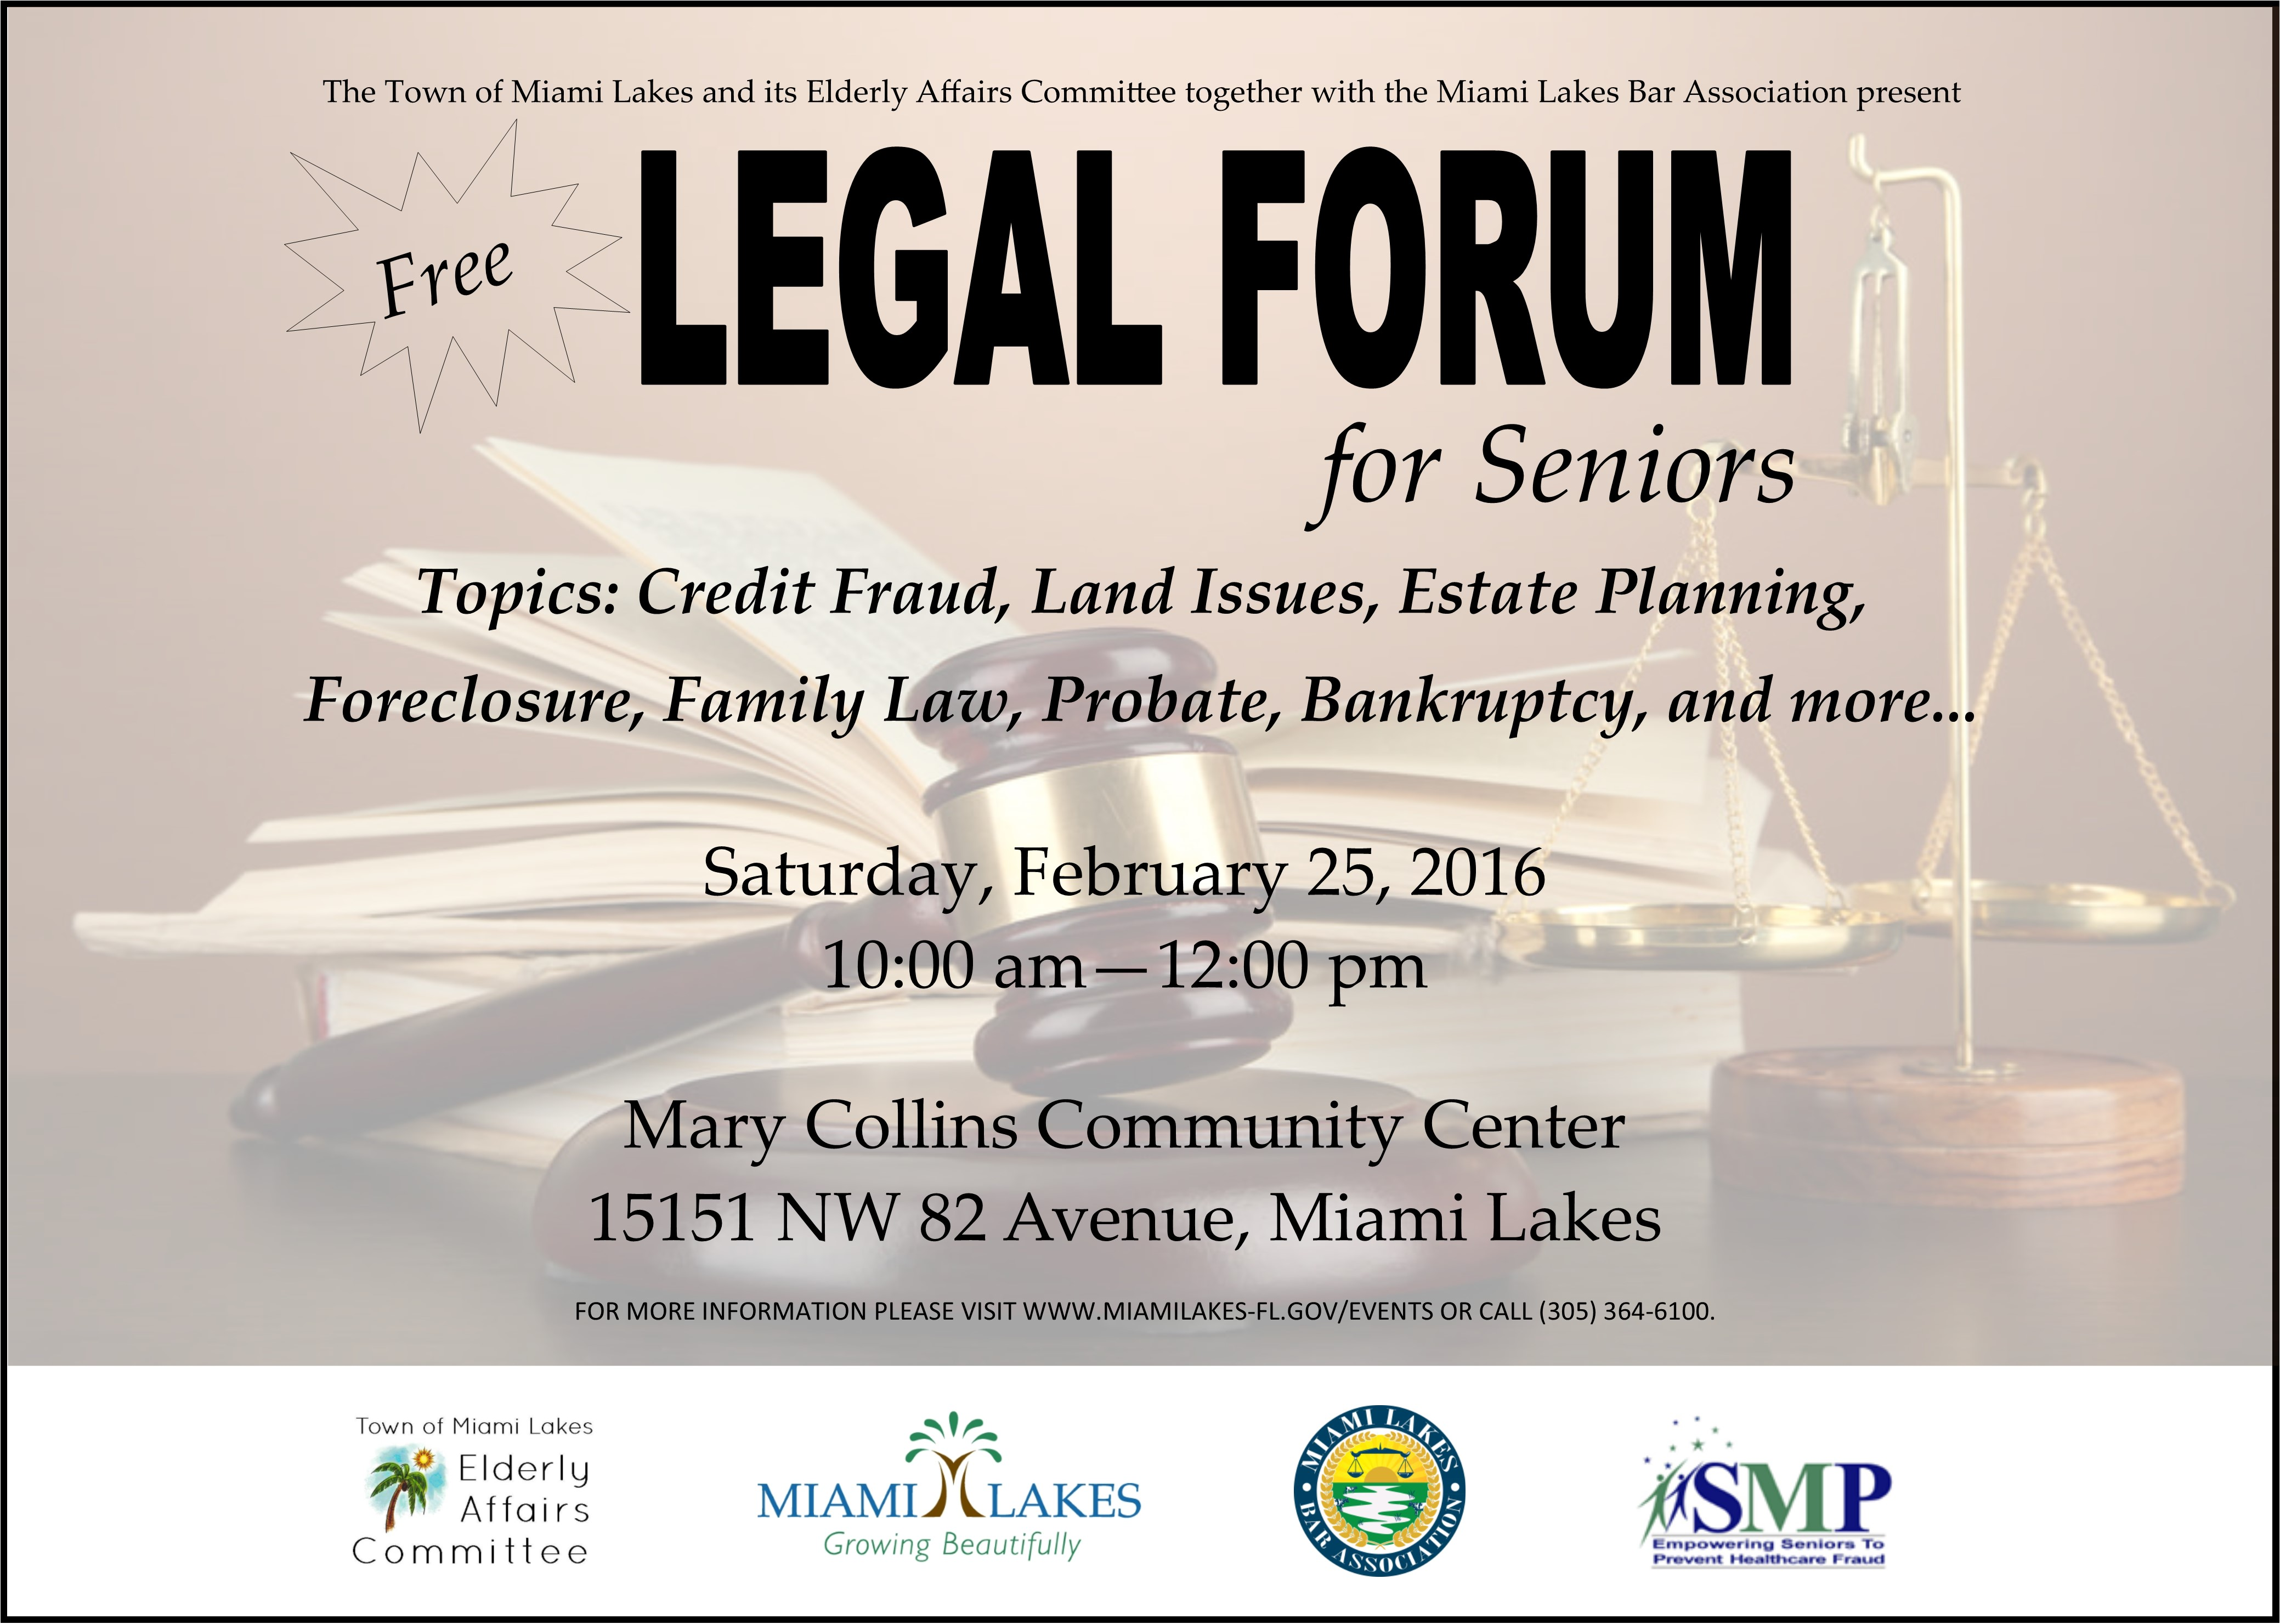 legal forum with sponsor logo